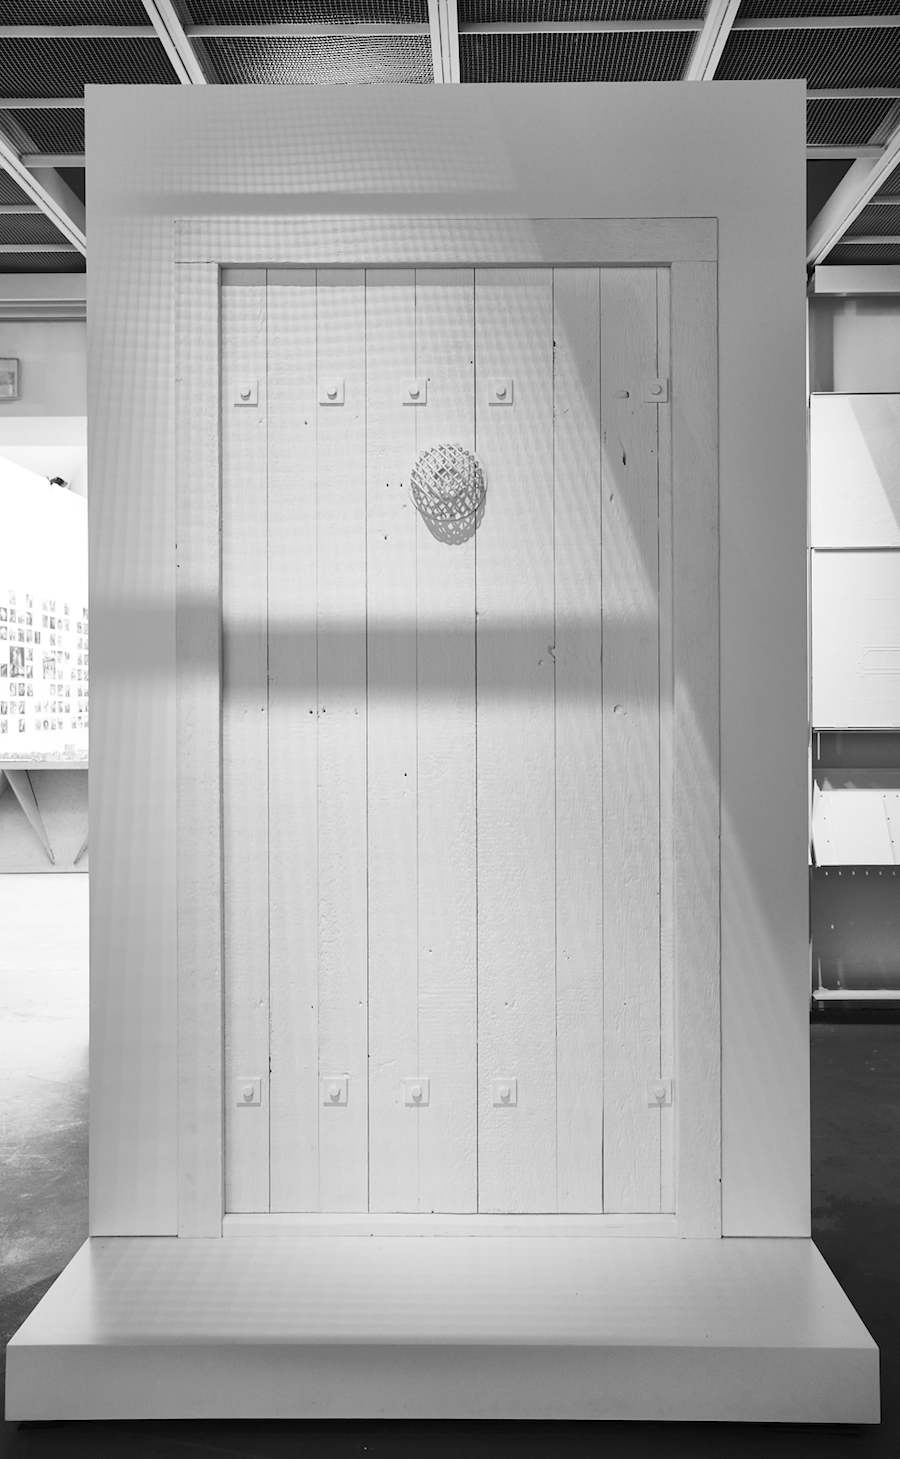 Model of the victim side of gastight door in The Evidence Room. Photo by Fred Hunsberger.